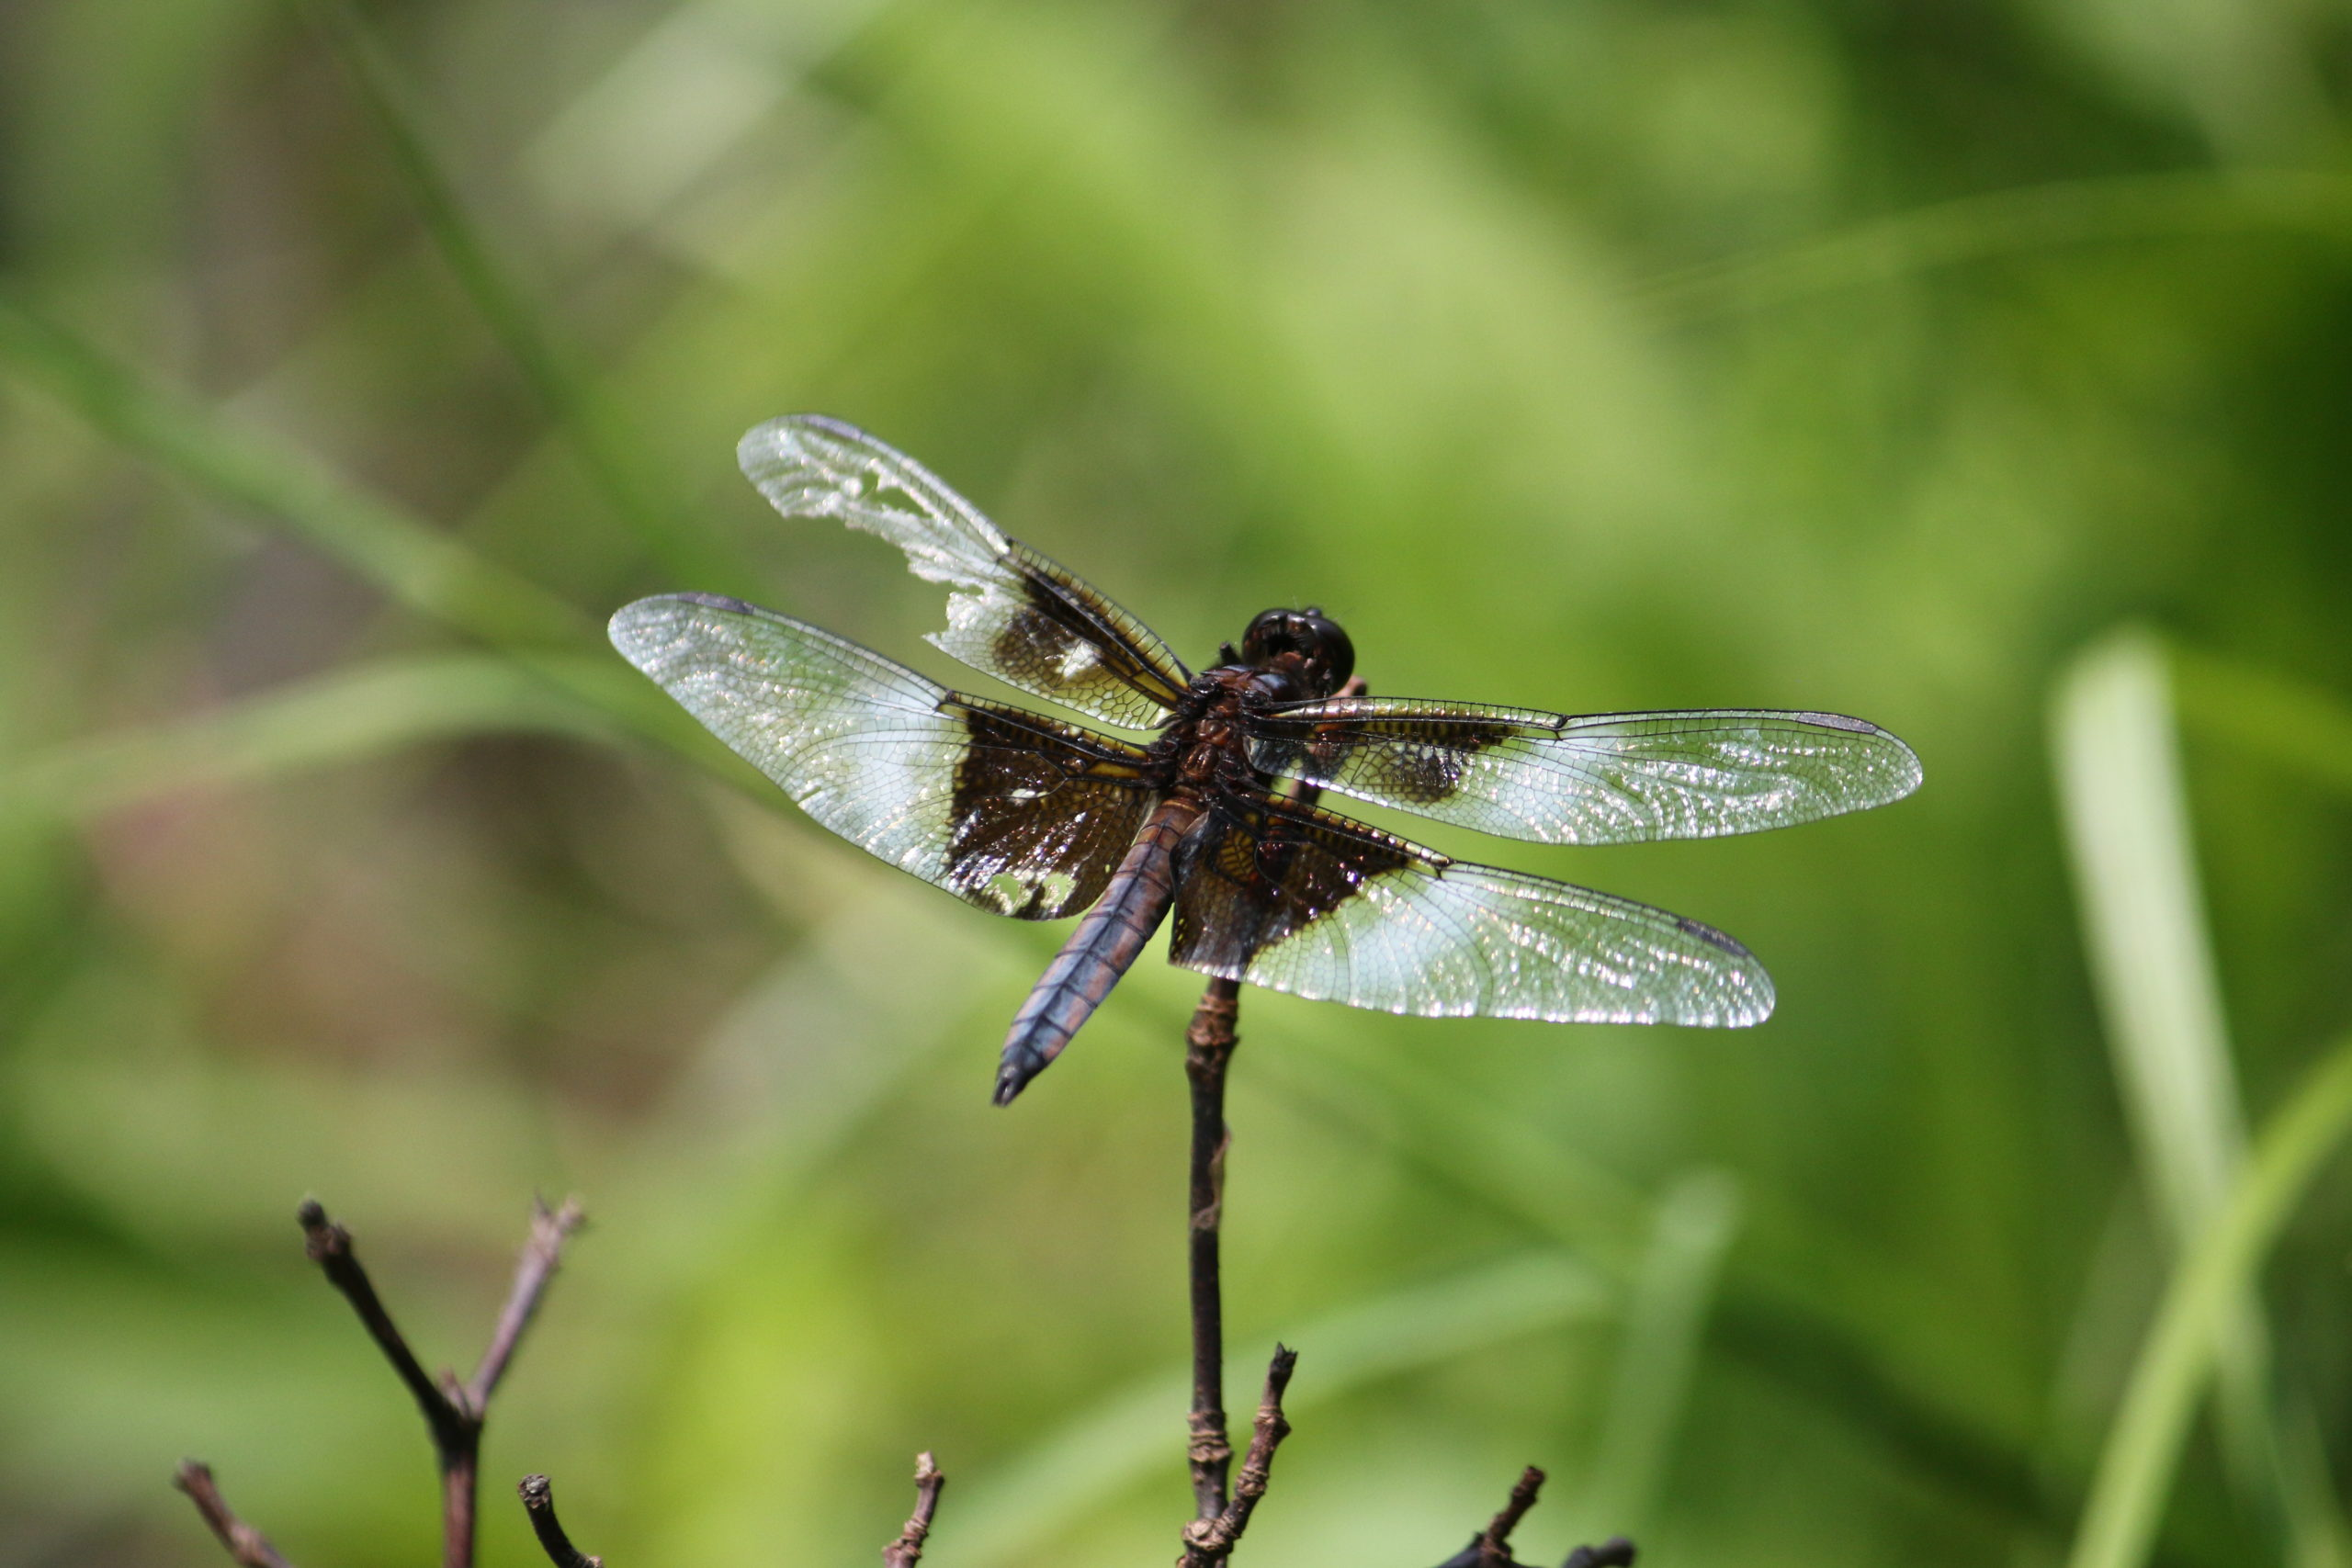 A dragonfly perches on top of a branch, wings spread wide